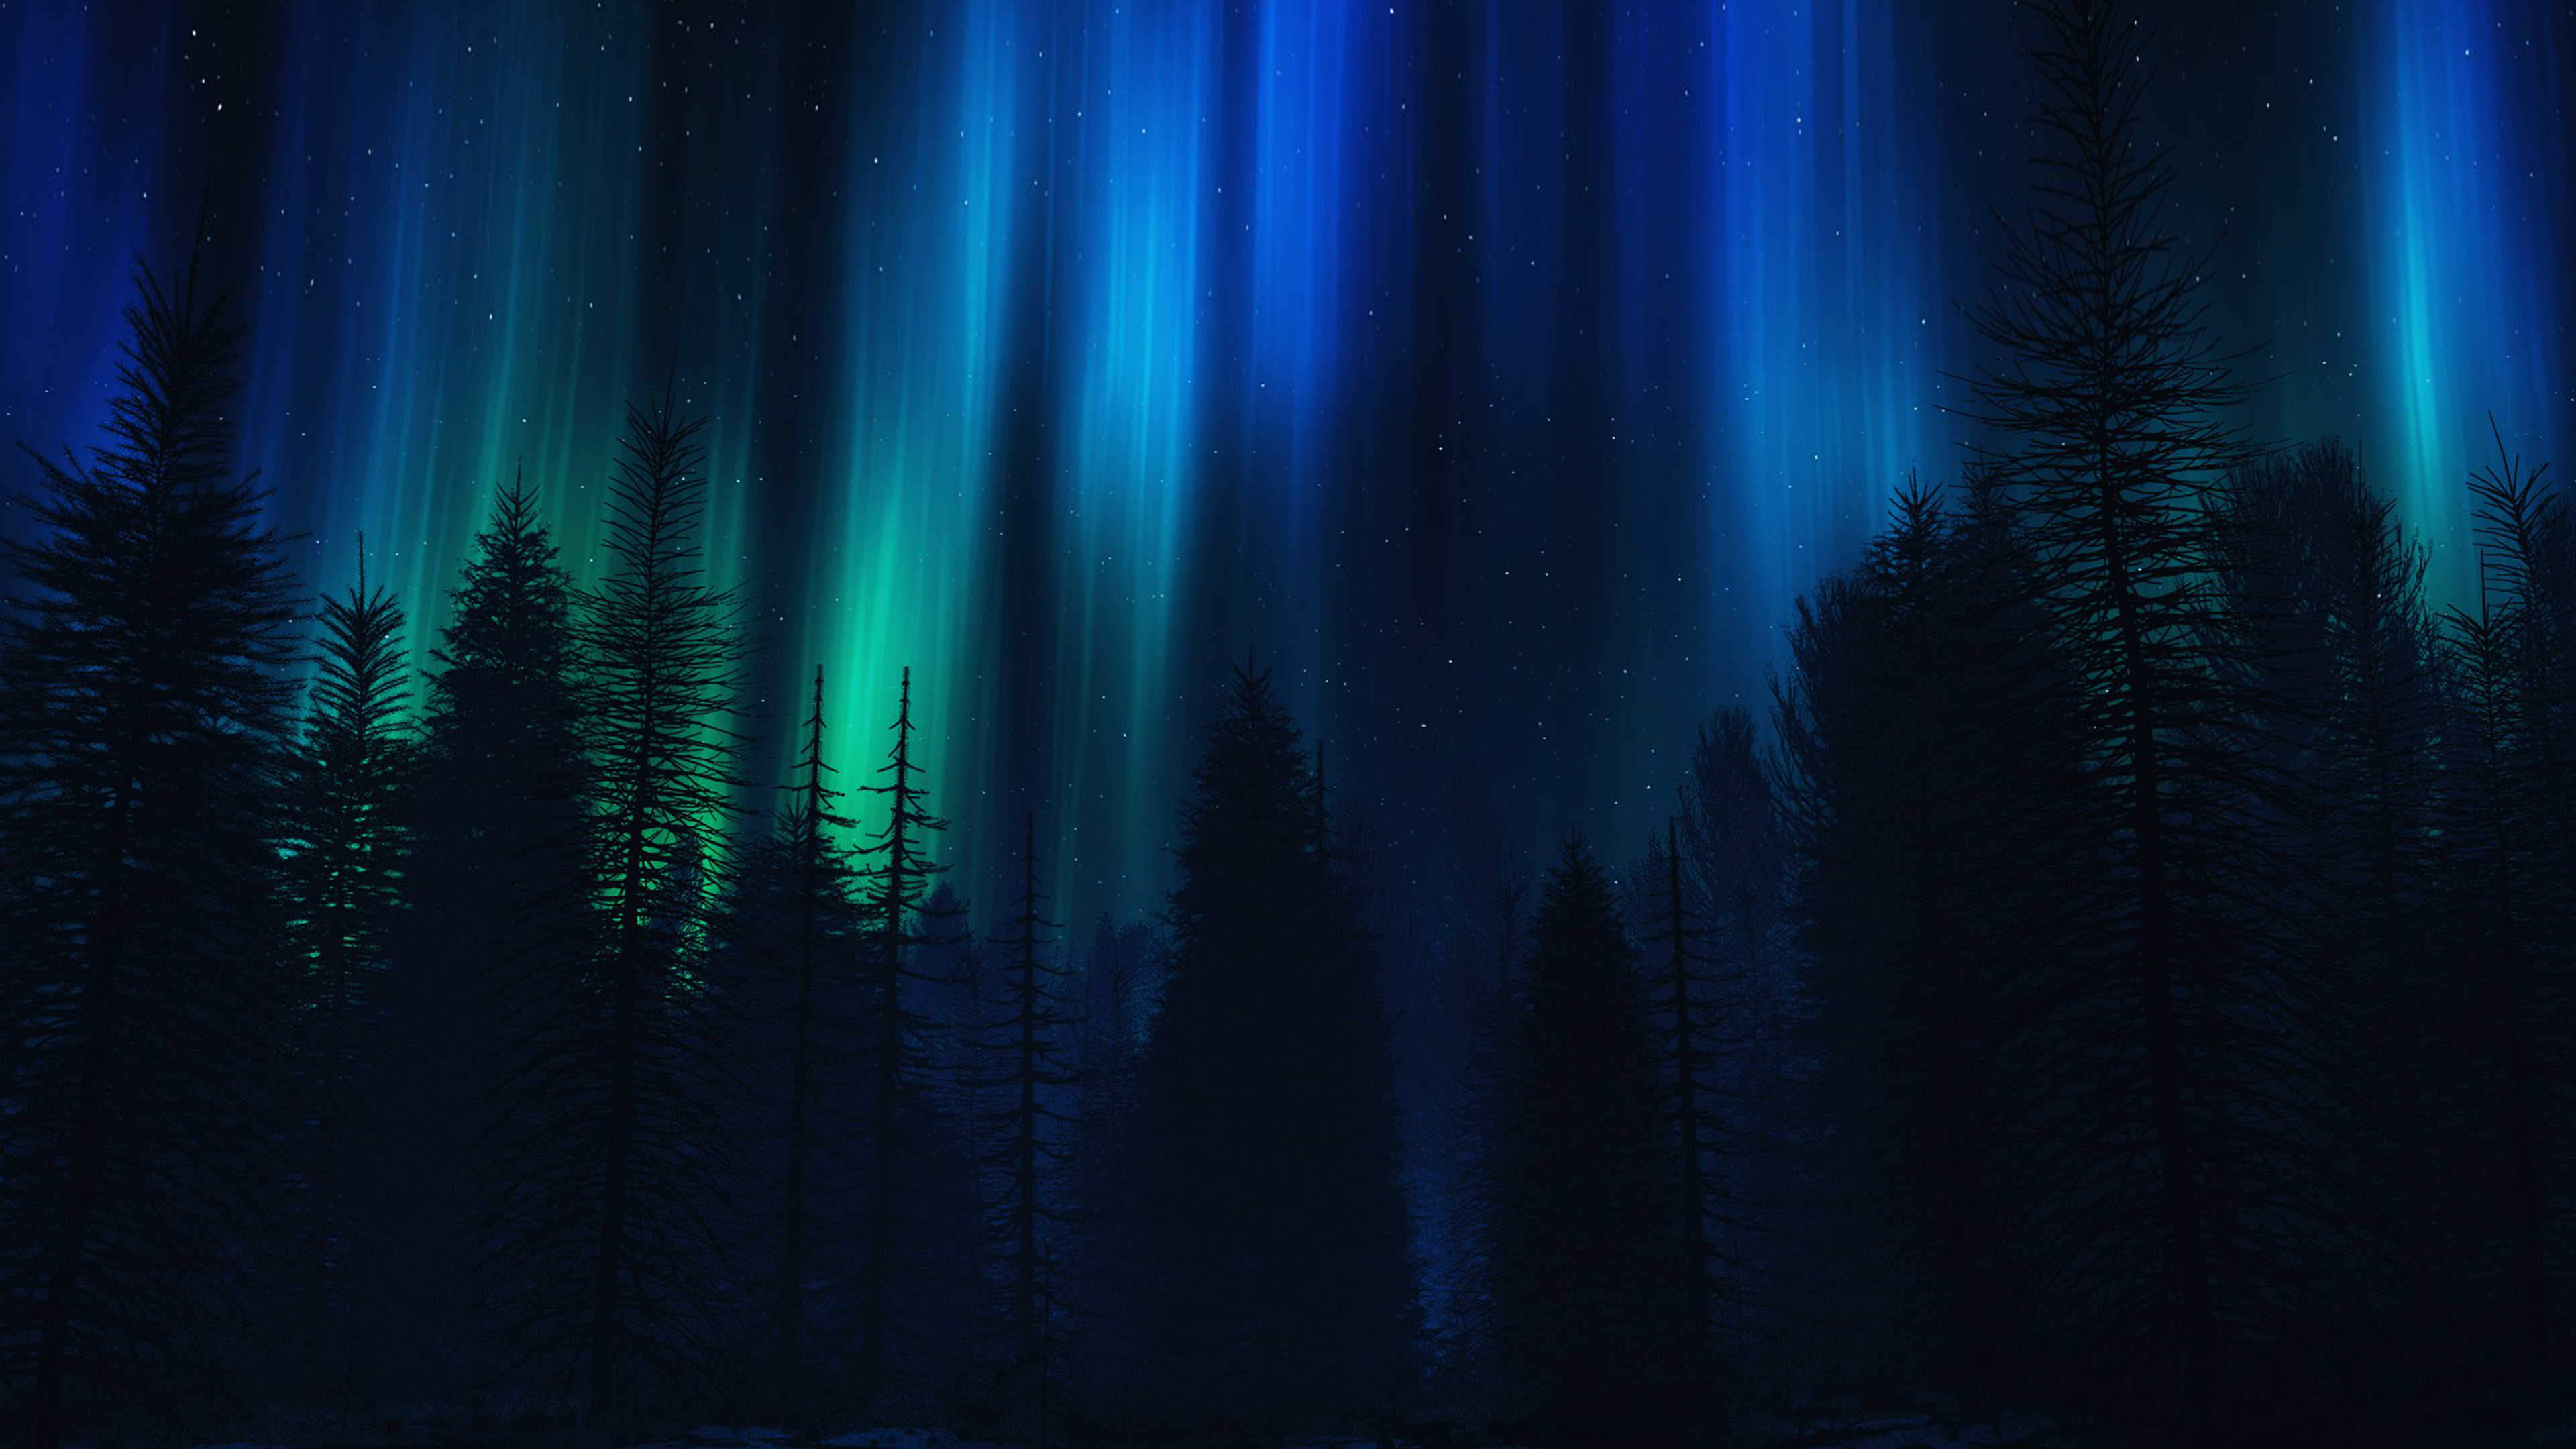 ao04-aurora-night-sky-dark-blue-nature-art - Papers.co